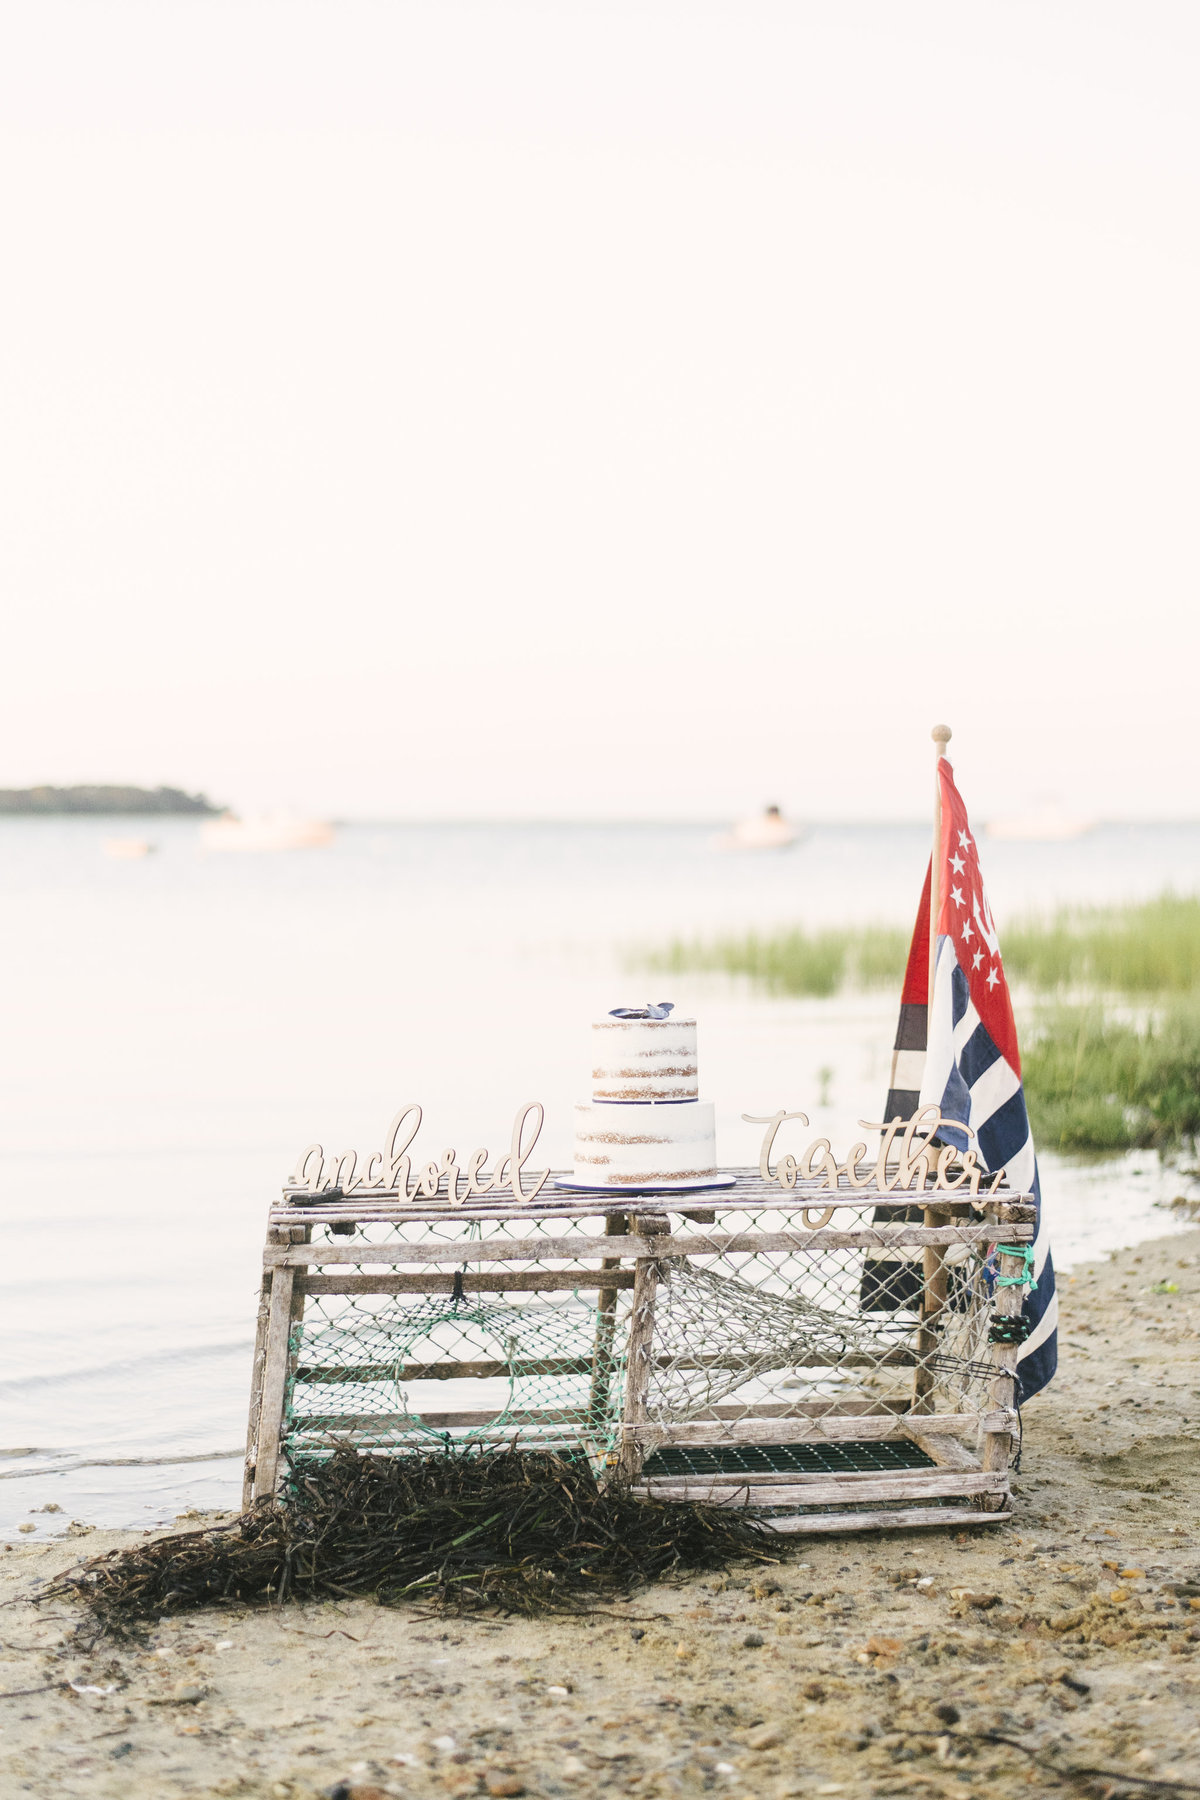 Monica-Relyea-Events-Alicia-King-Photography-Cape-Cod-Anniversary-Shoot-Wedding-Beach-Chatham-Nautical-Summer-Massachusetts111